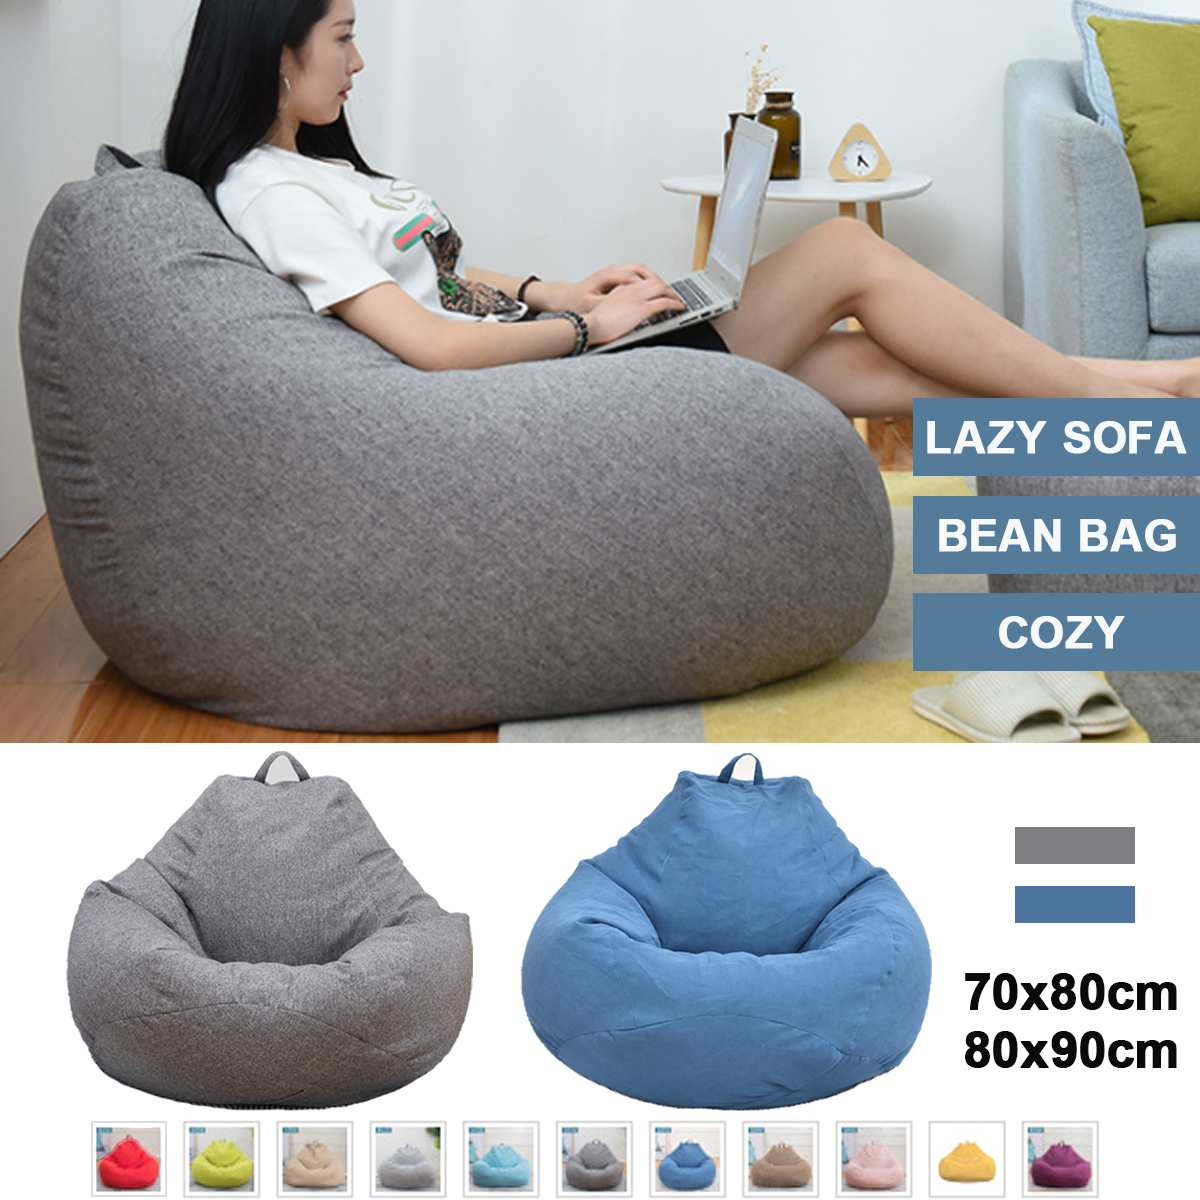 Furniture Stuffed Animal Ottoman Seat Bean Bag Without Filling Beanbag Sofas Lounger Chair Sofa Cotton Chair Cover Only Cover